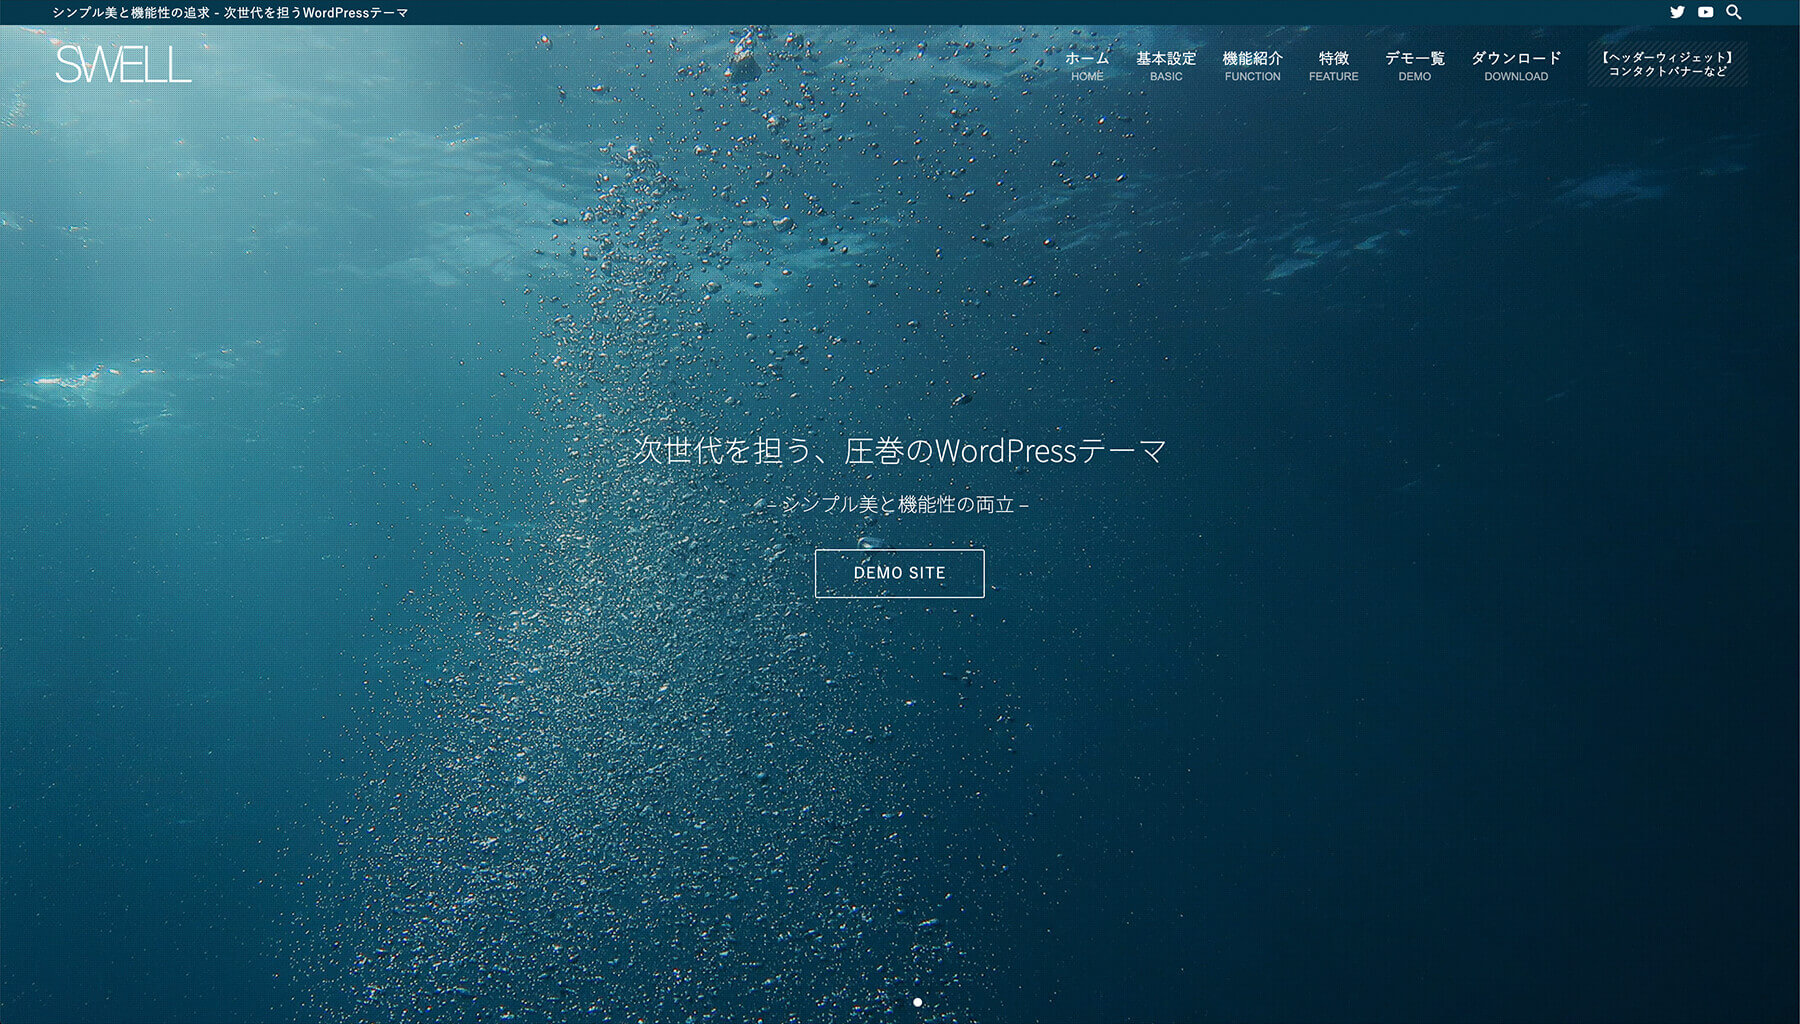 SWELL OFFICIAL SITE